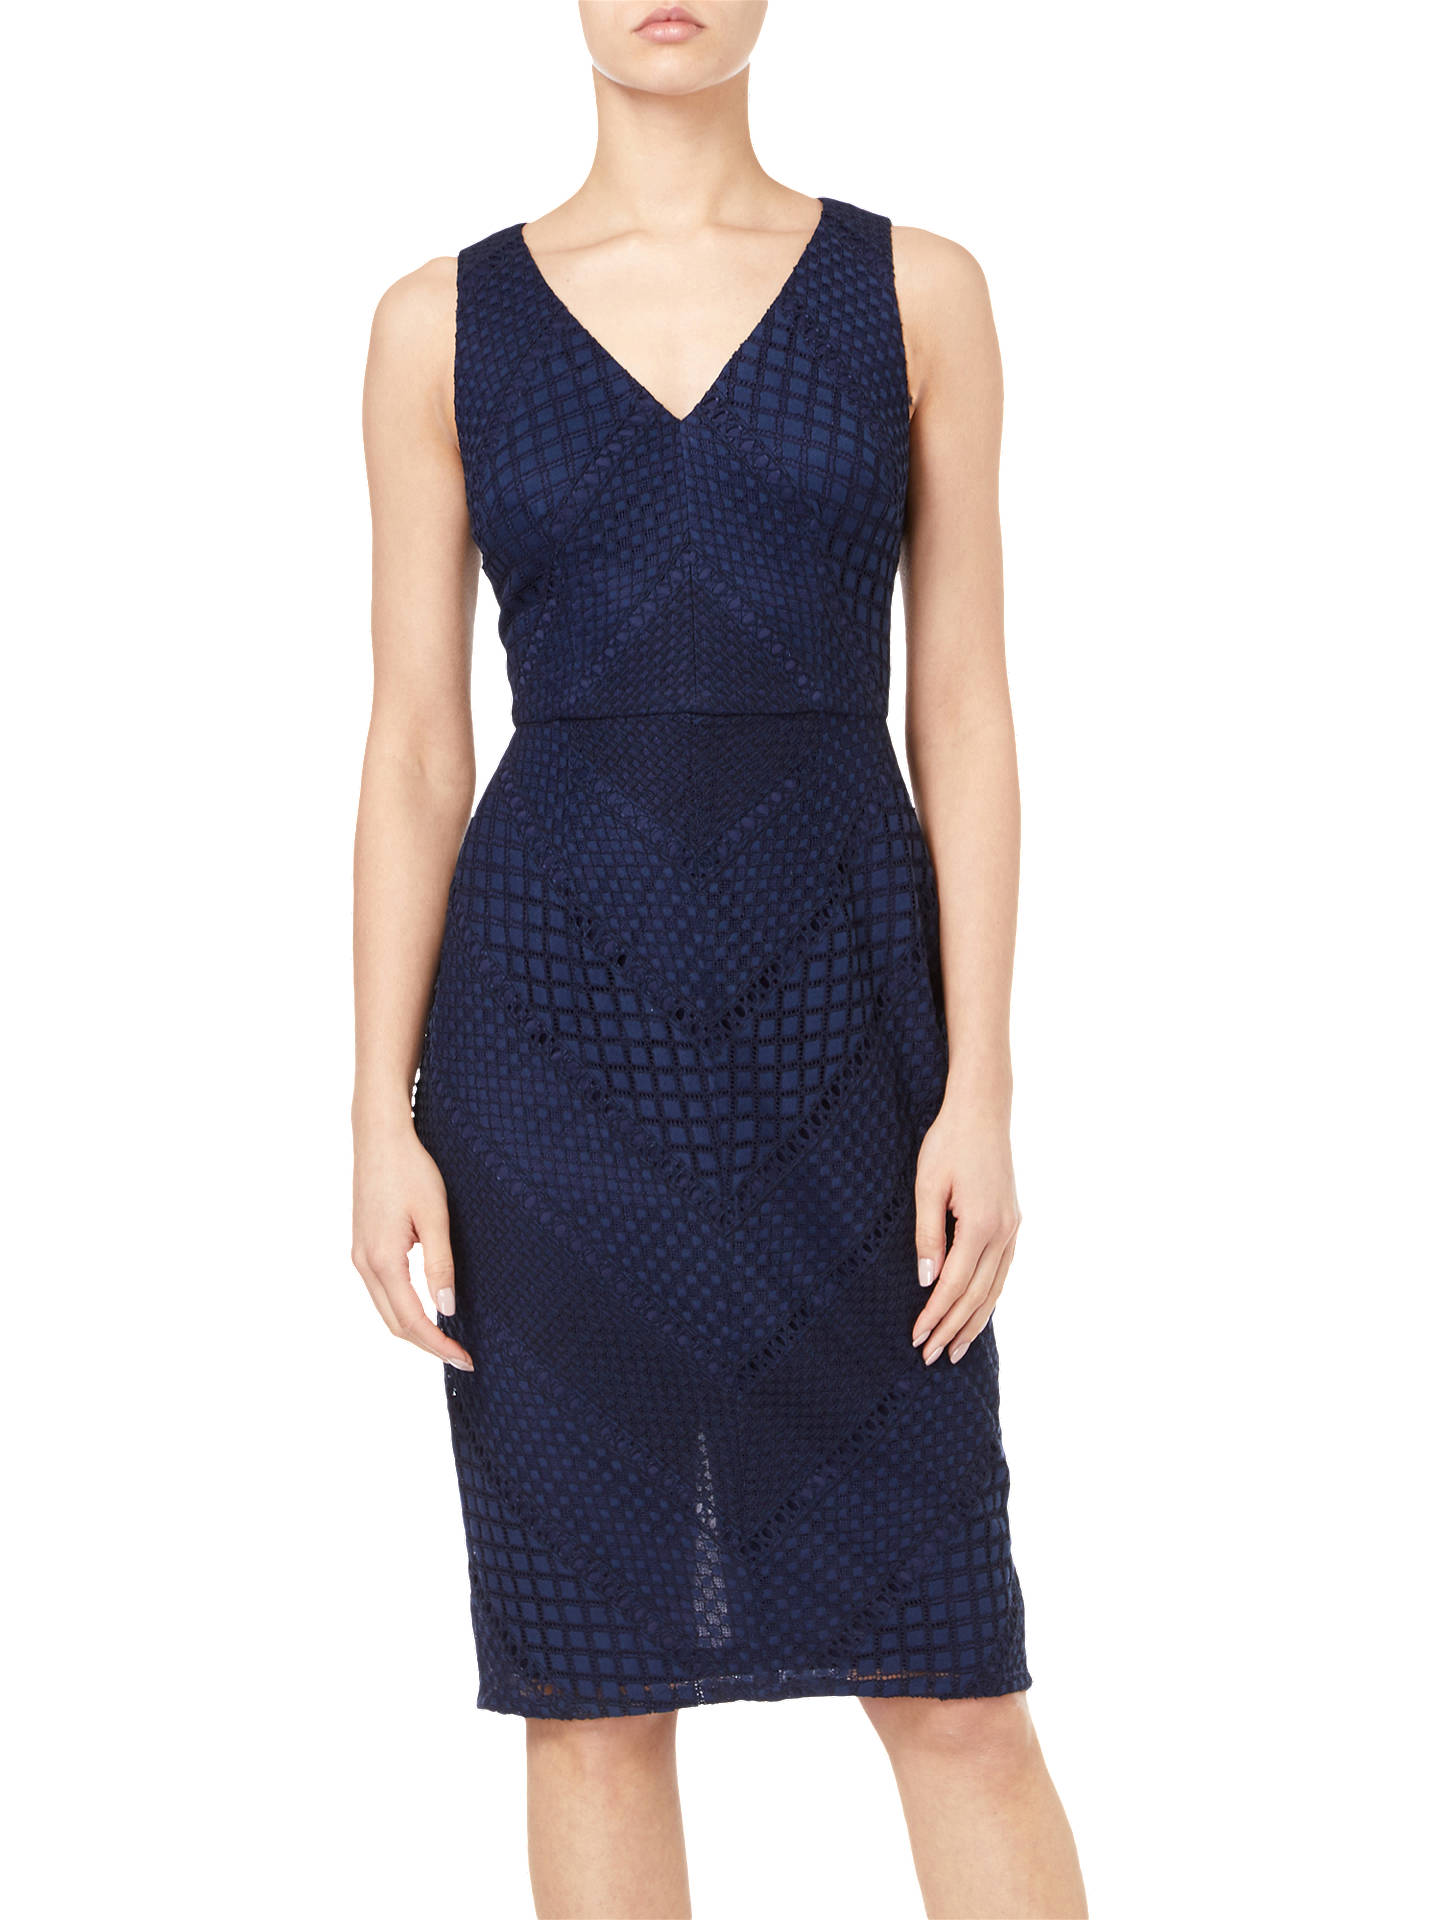 Buy Adrianna Papell Vintage Lace Dress, Navy/Black, 8 Online at johnlewis.com